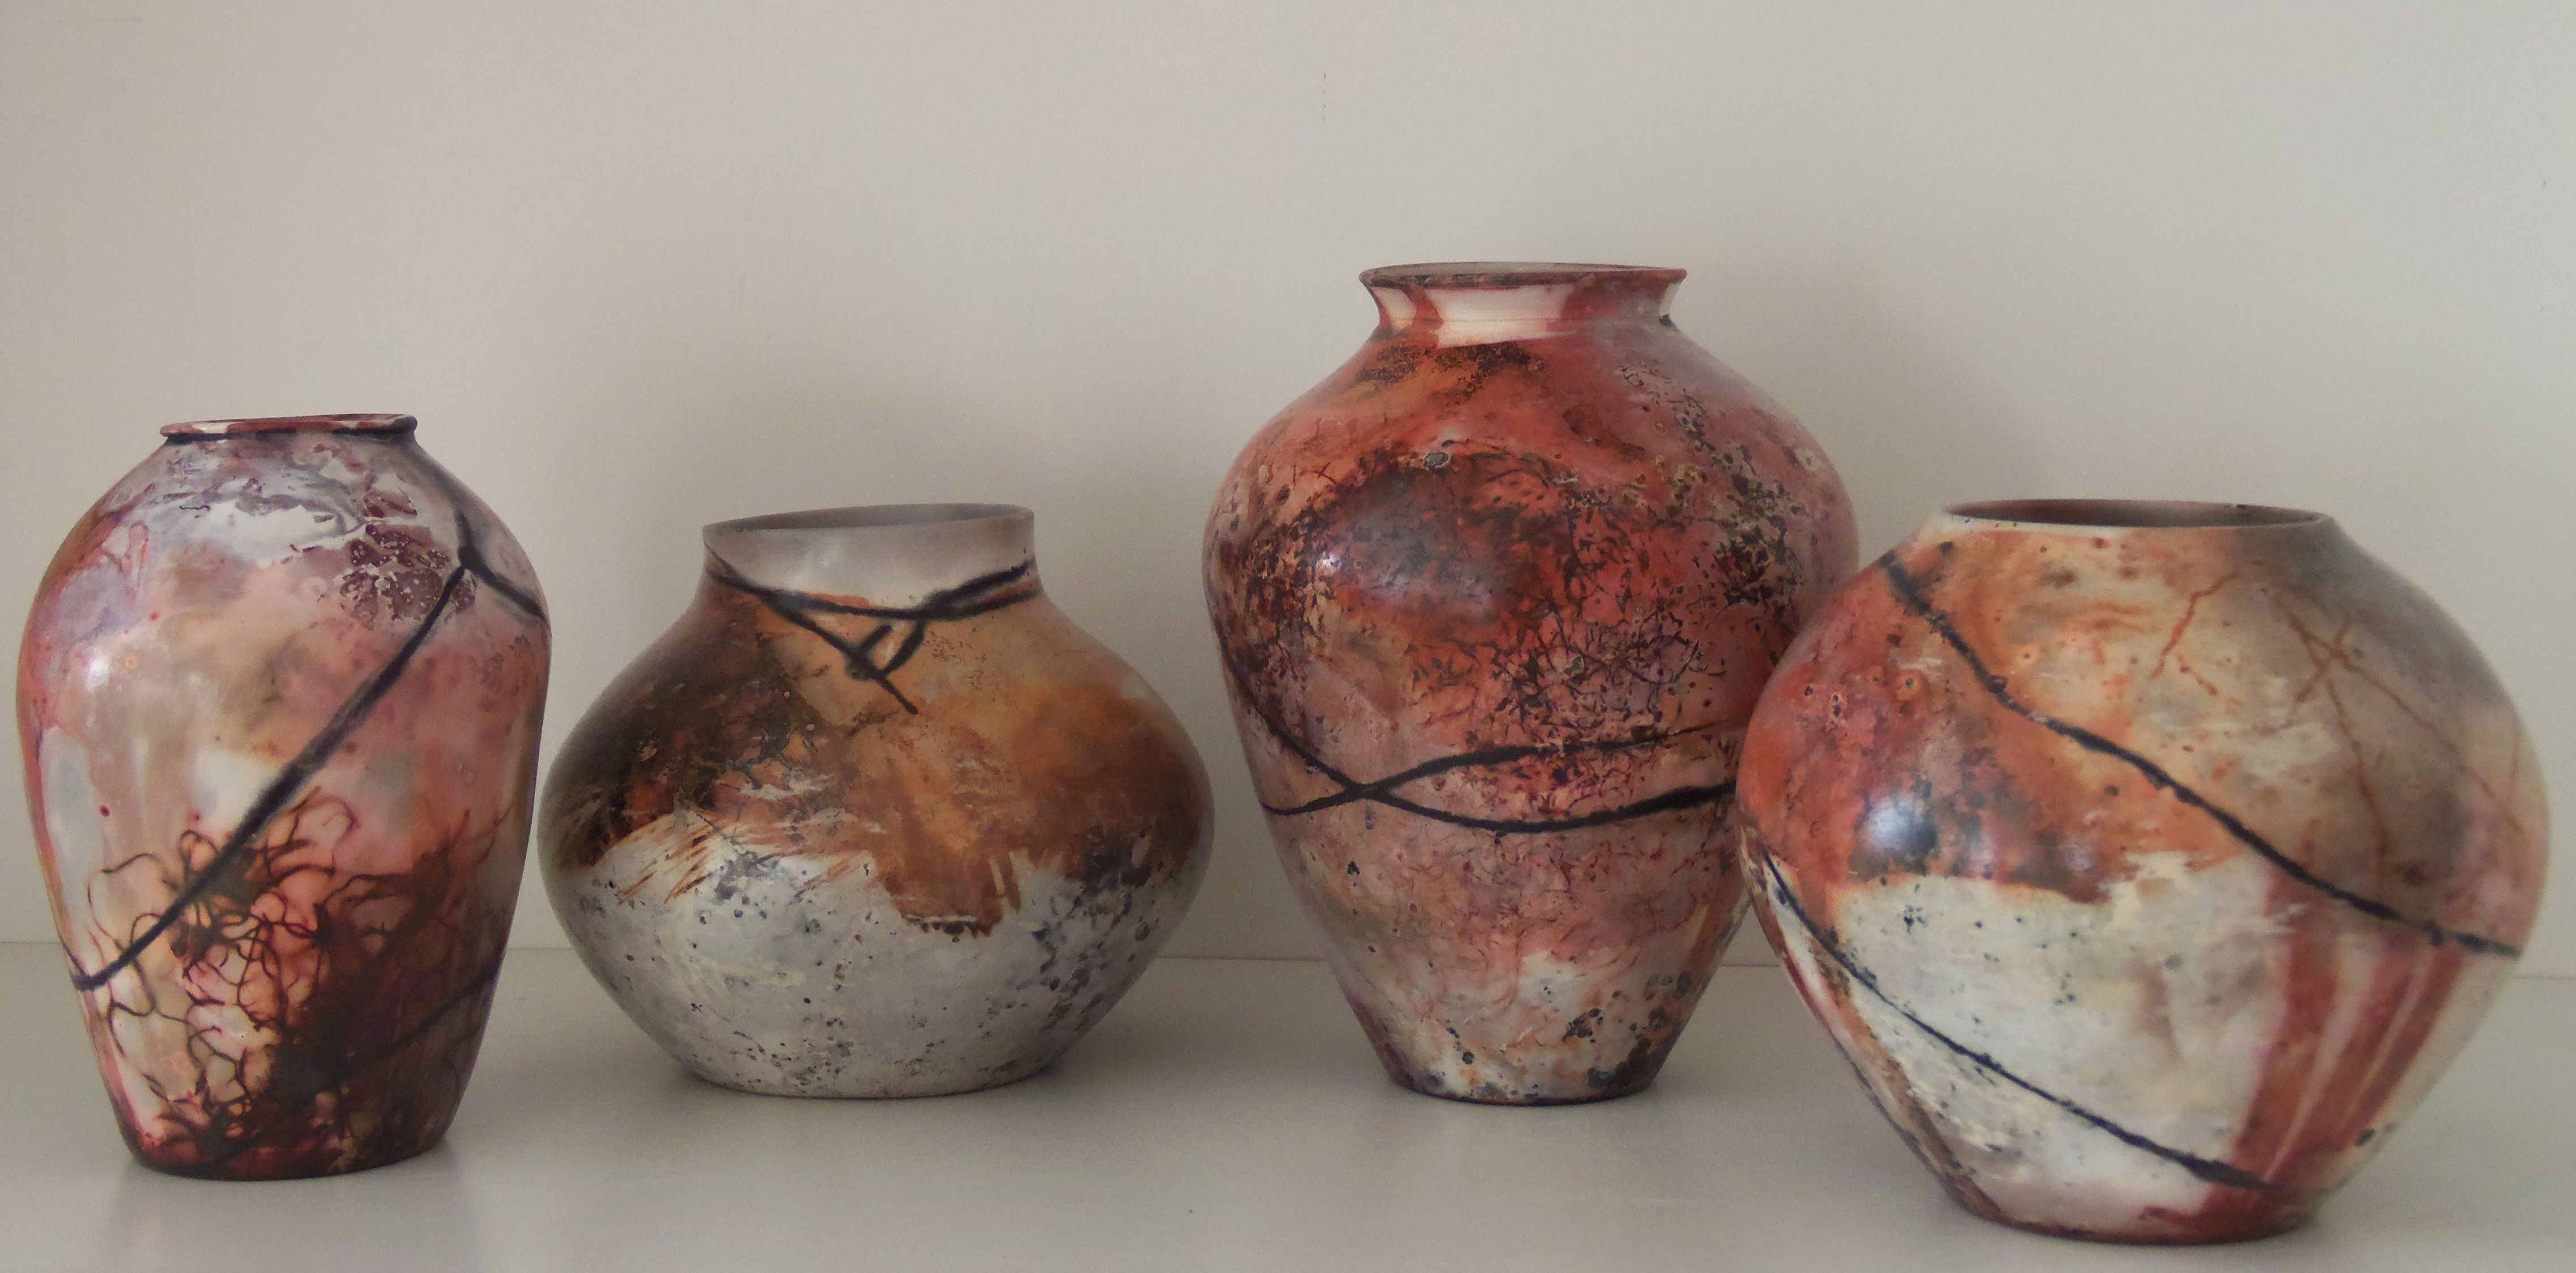 Pit Fired With Metal Salts And Copper Wire Seadrift Gardens Pottery Garden Pottery Pottery Metal Salts